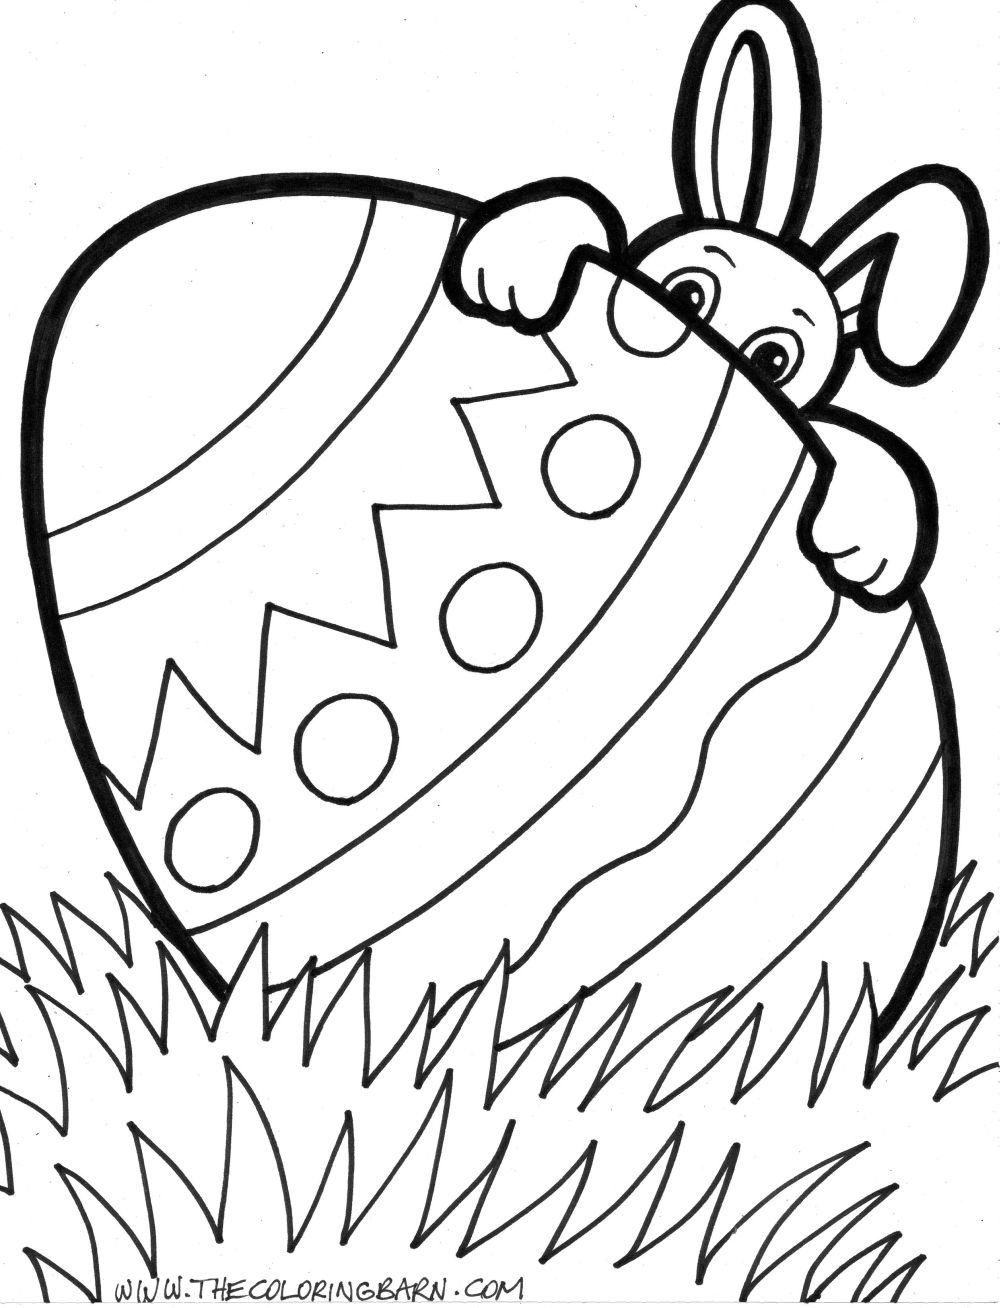 Monster Easter Egg Coloring Page Chics Gathering